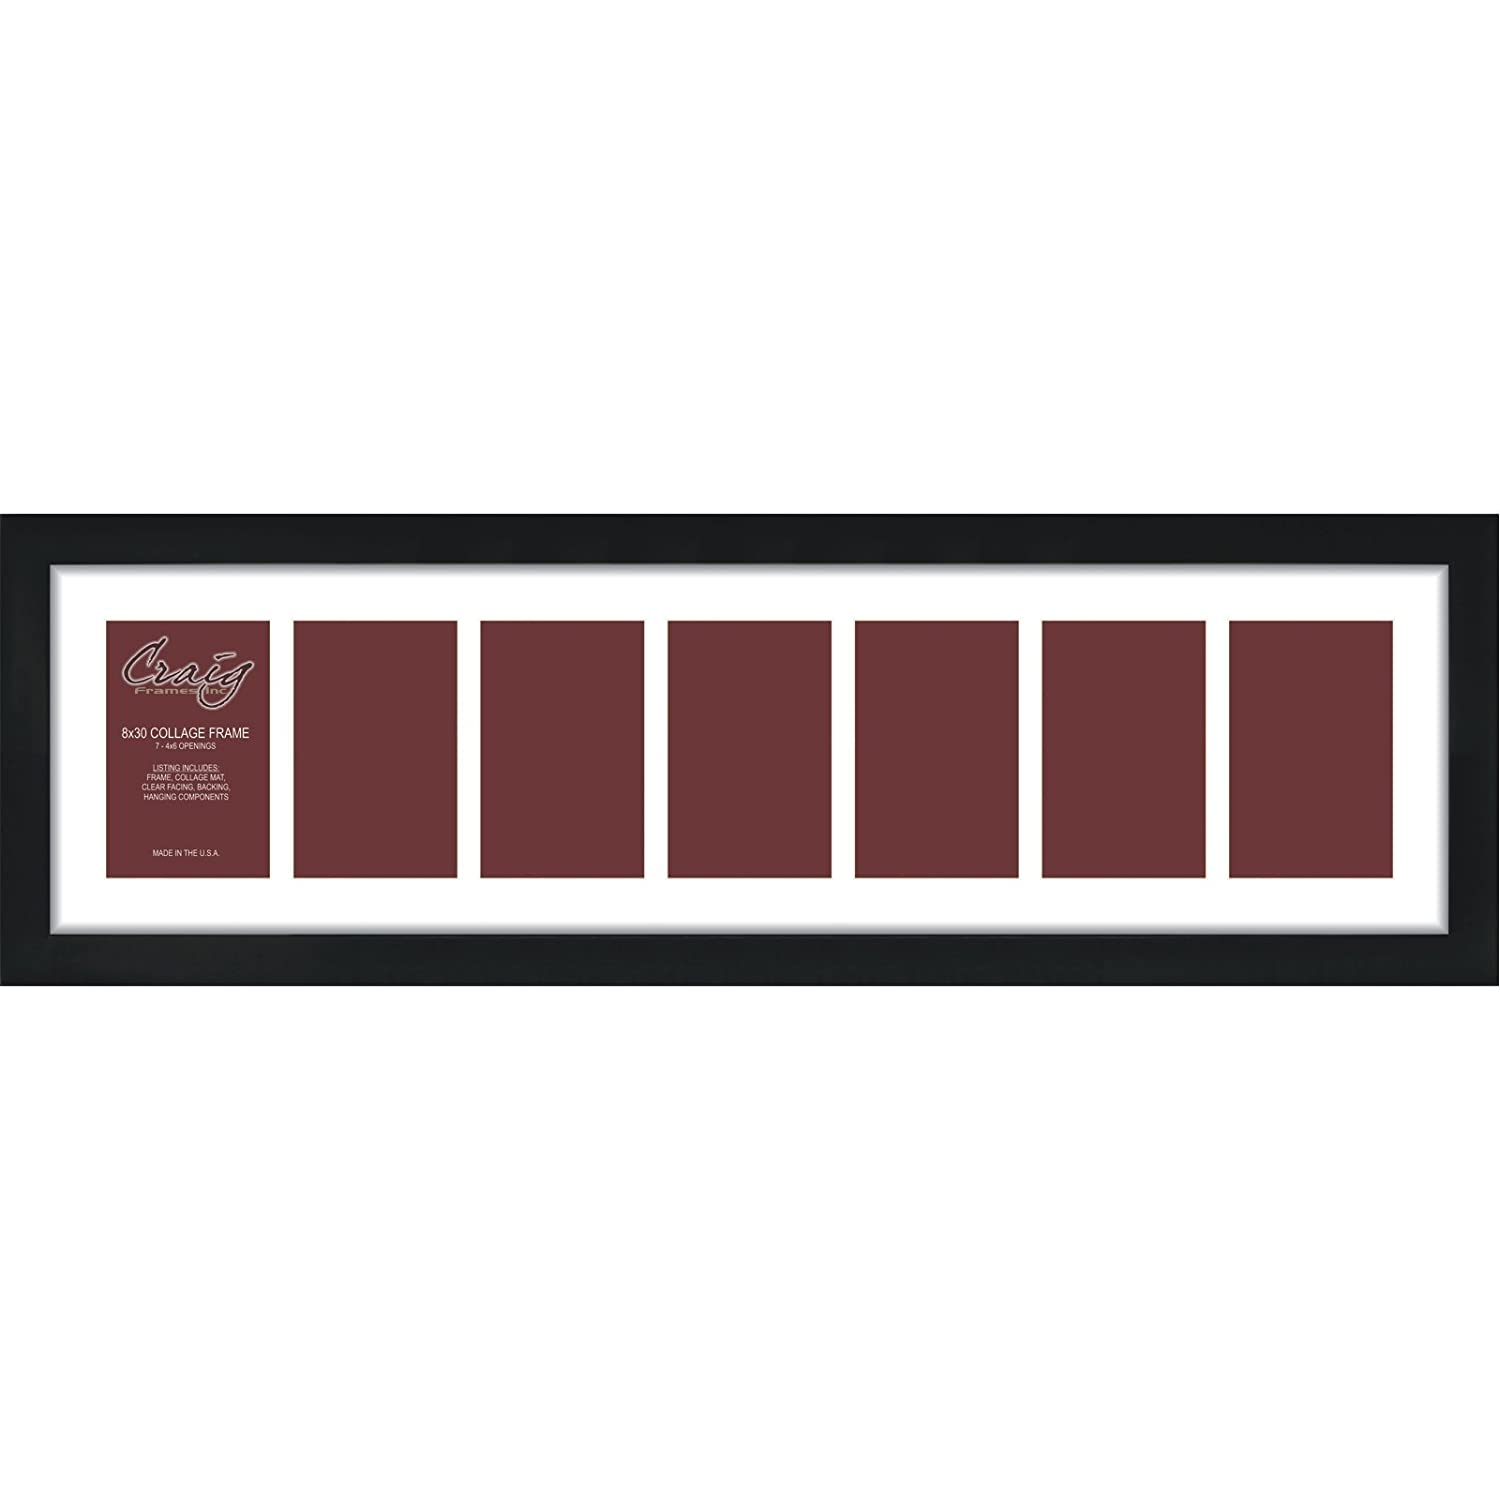 Amazon craig frames 1wb3bk 8 by 30 inch black picture frame amazon craig frames 1wb3bk 8 by 30 inch black picture frame single white collage mat with 7 4 by 6 inch openings jeuxipadfo Gallery